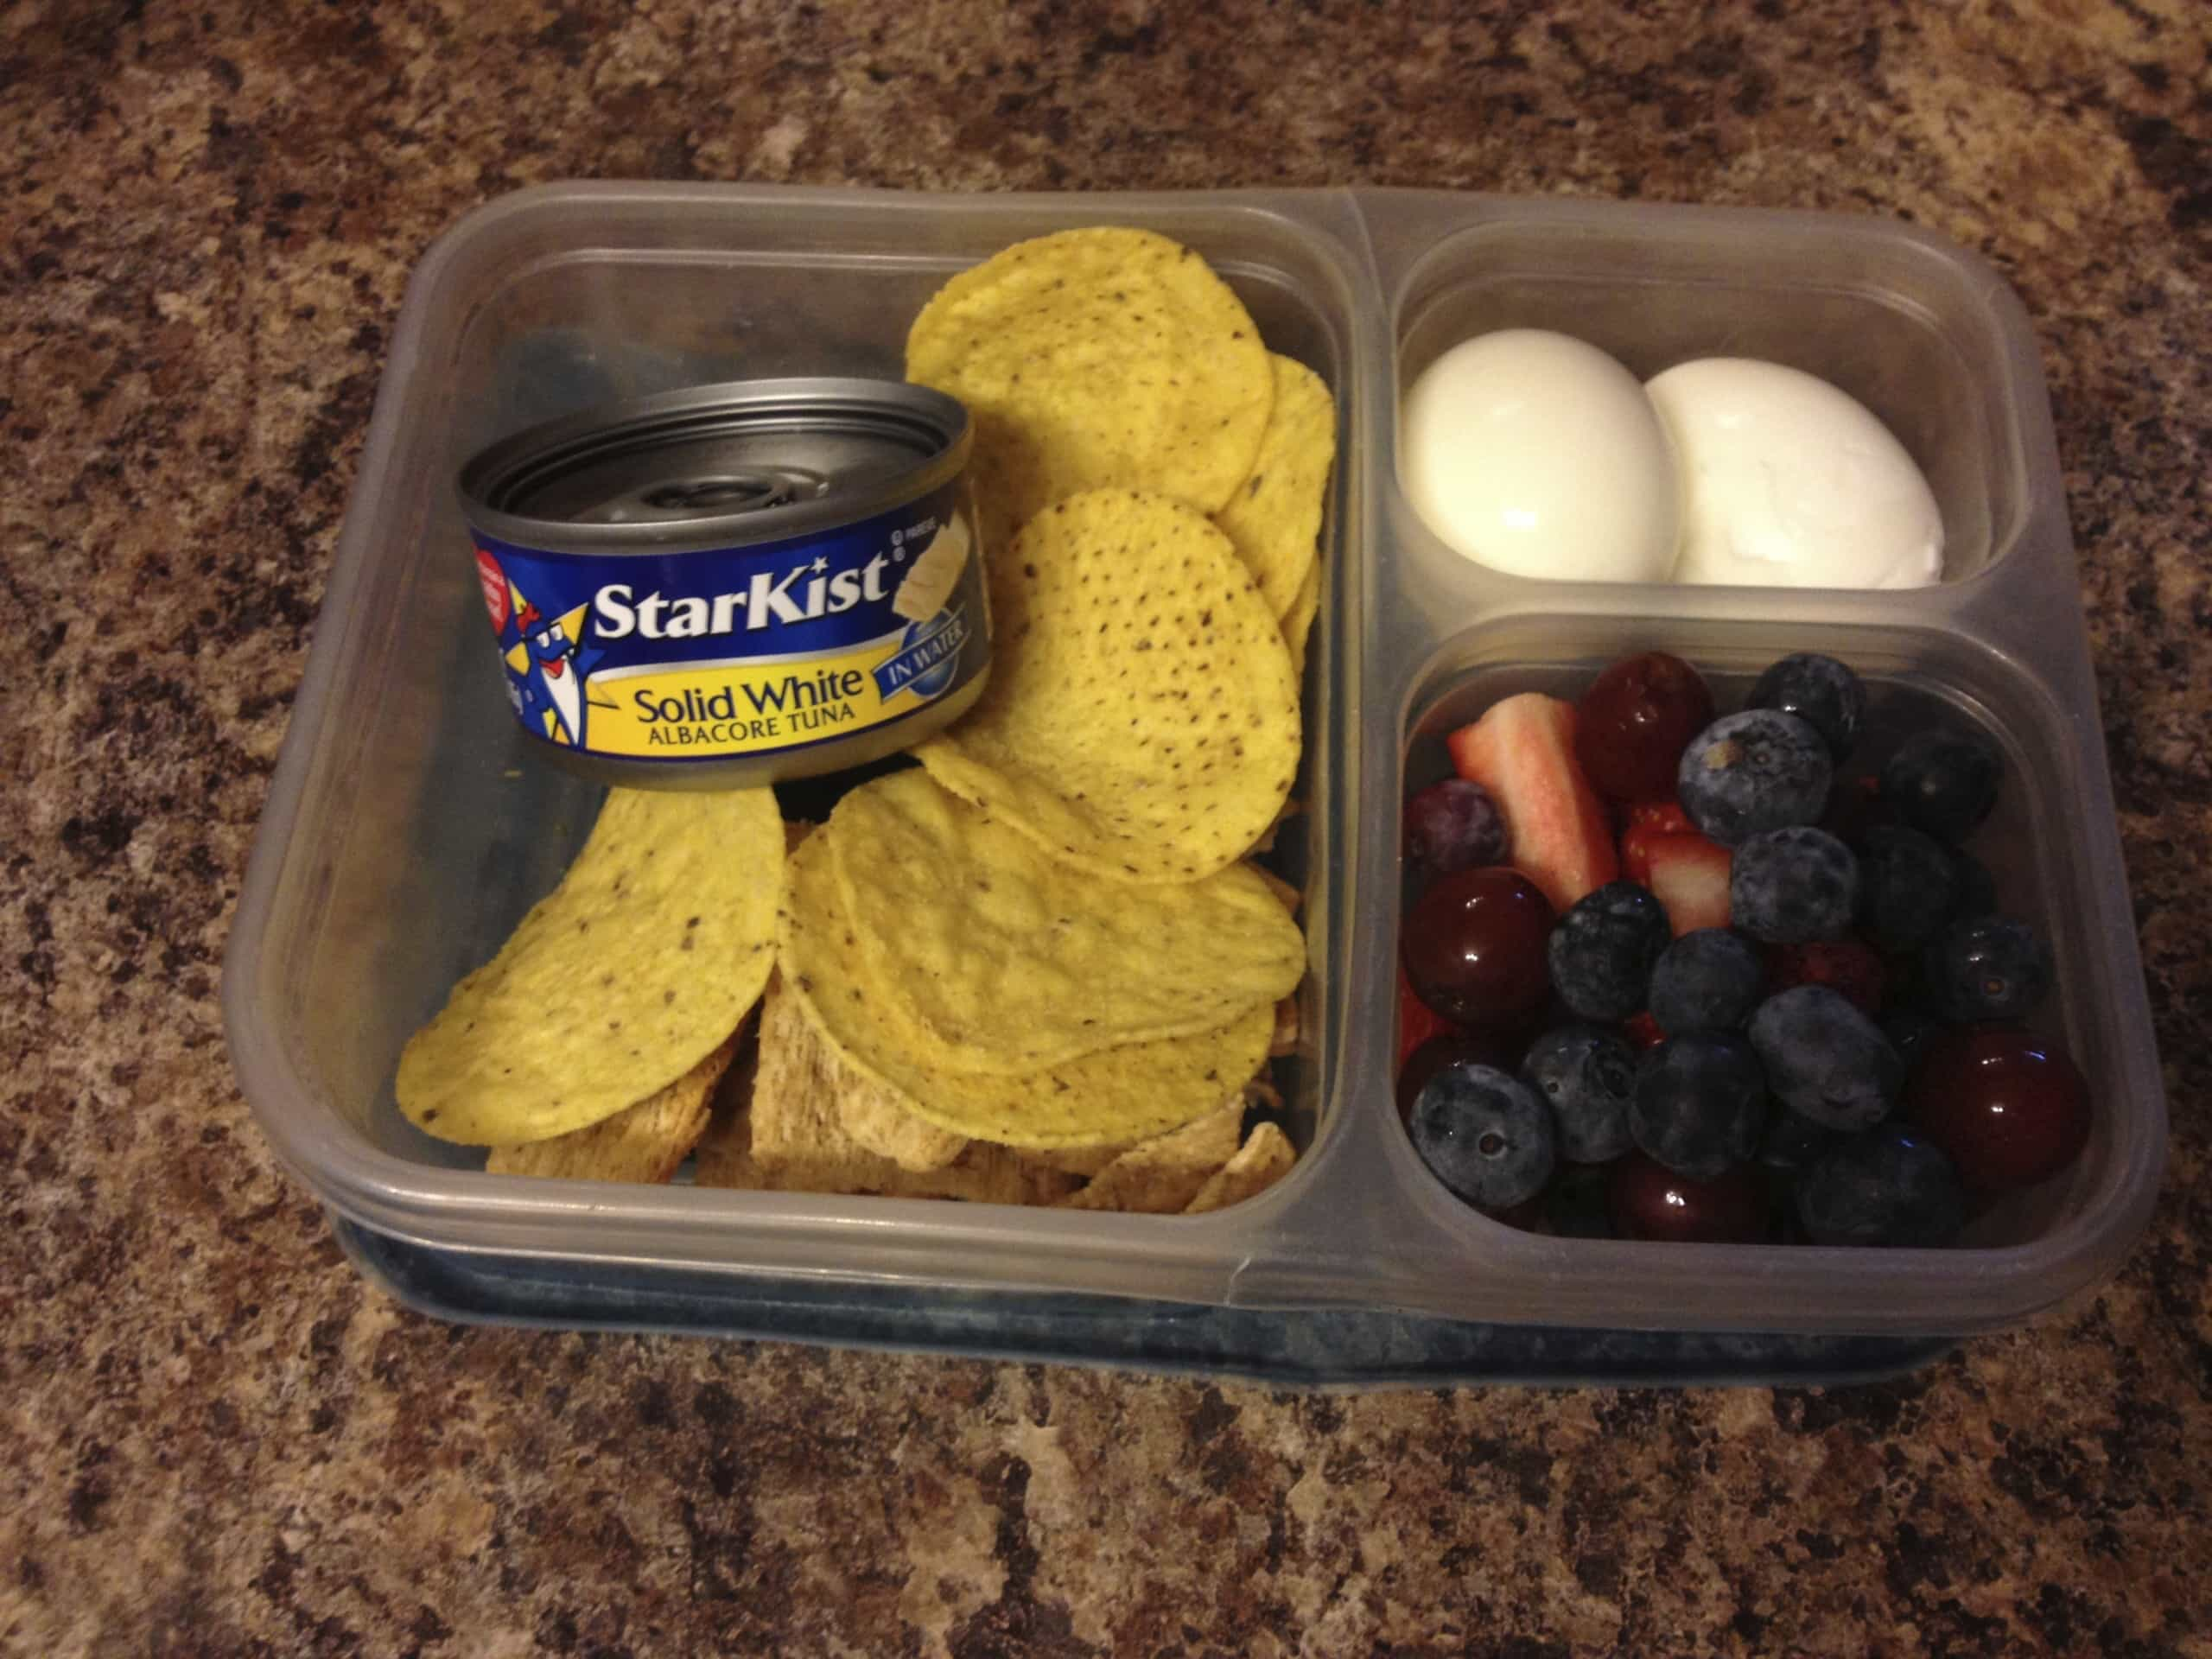 Packed lunch of tuna, fruit, and hard boiled eggs.